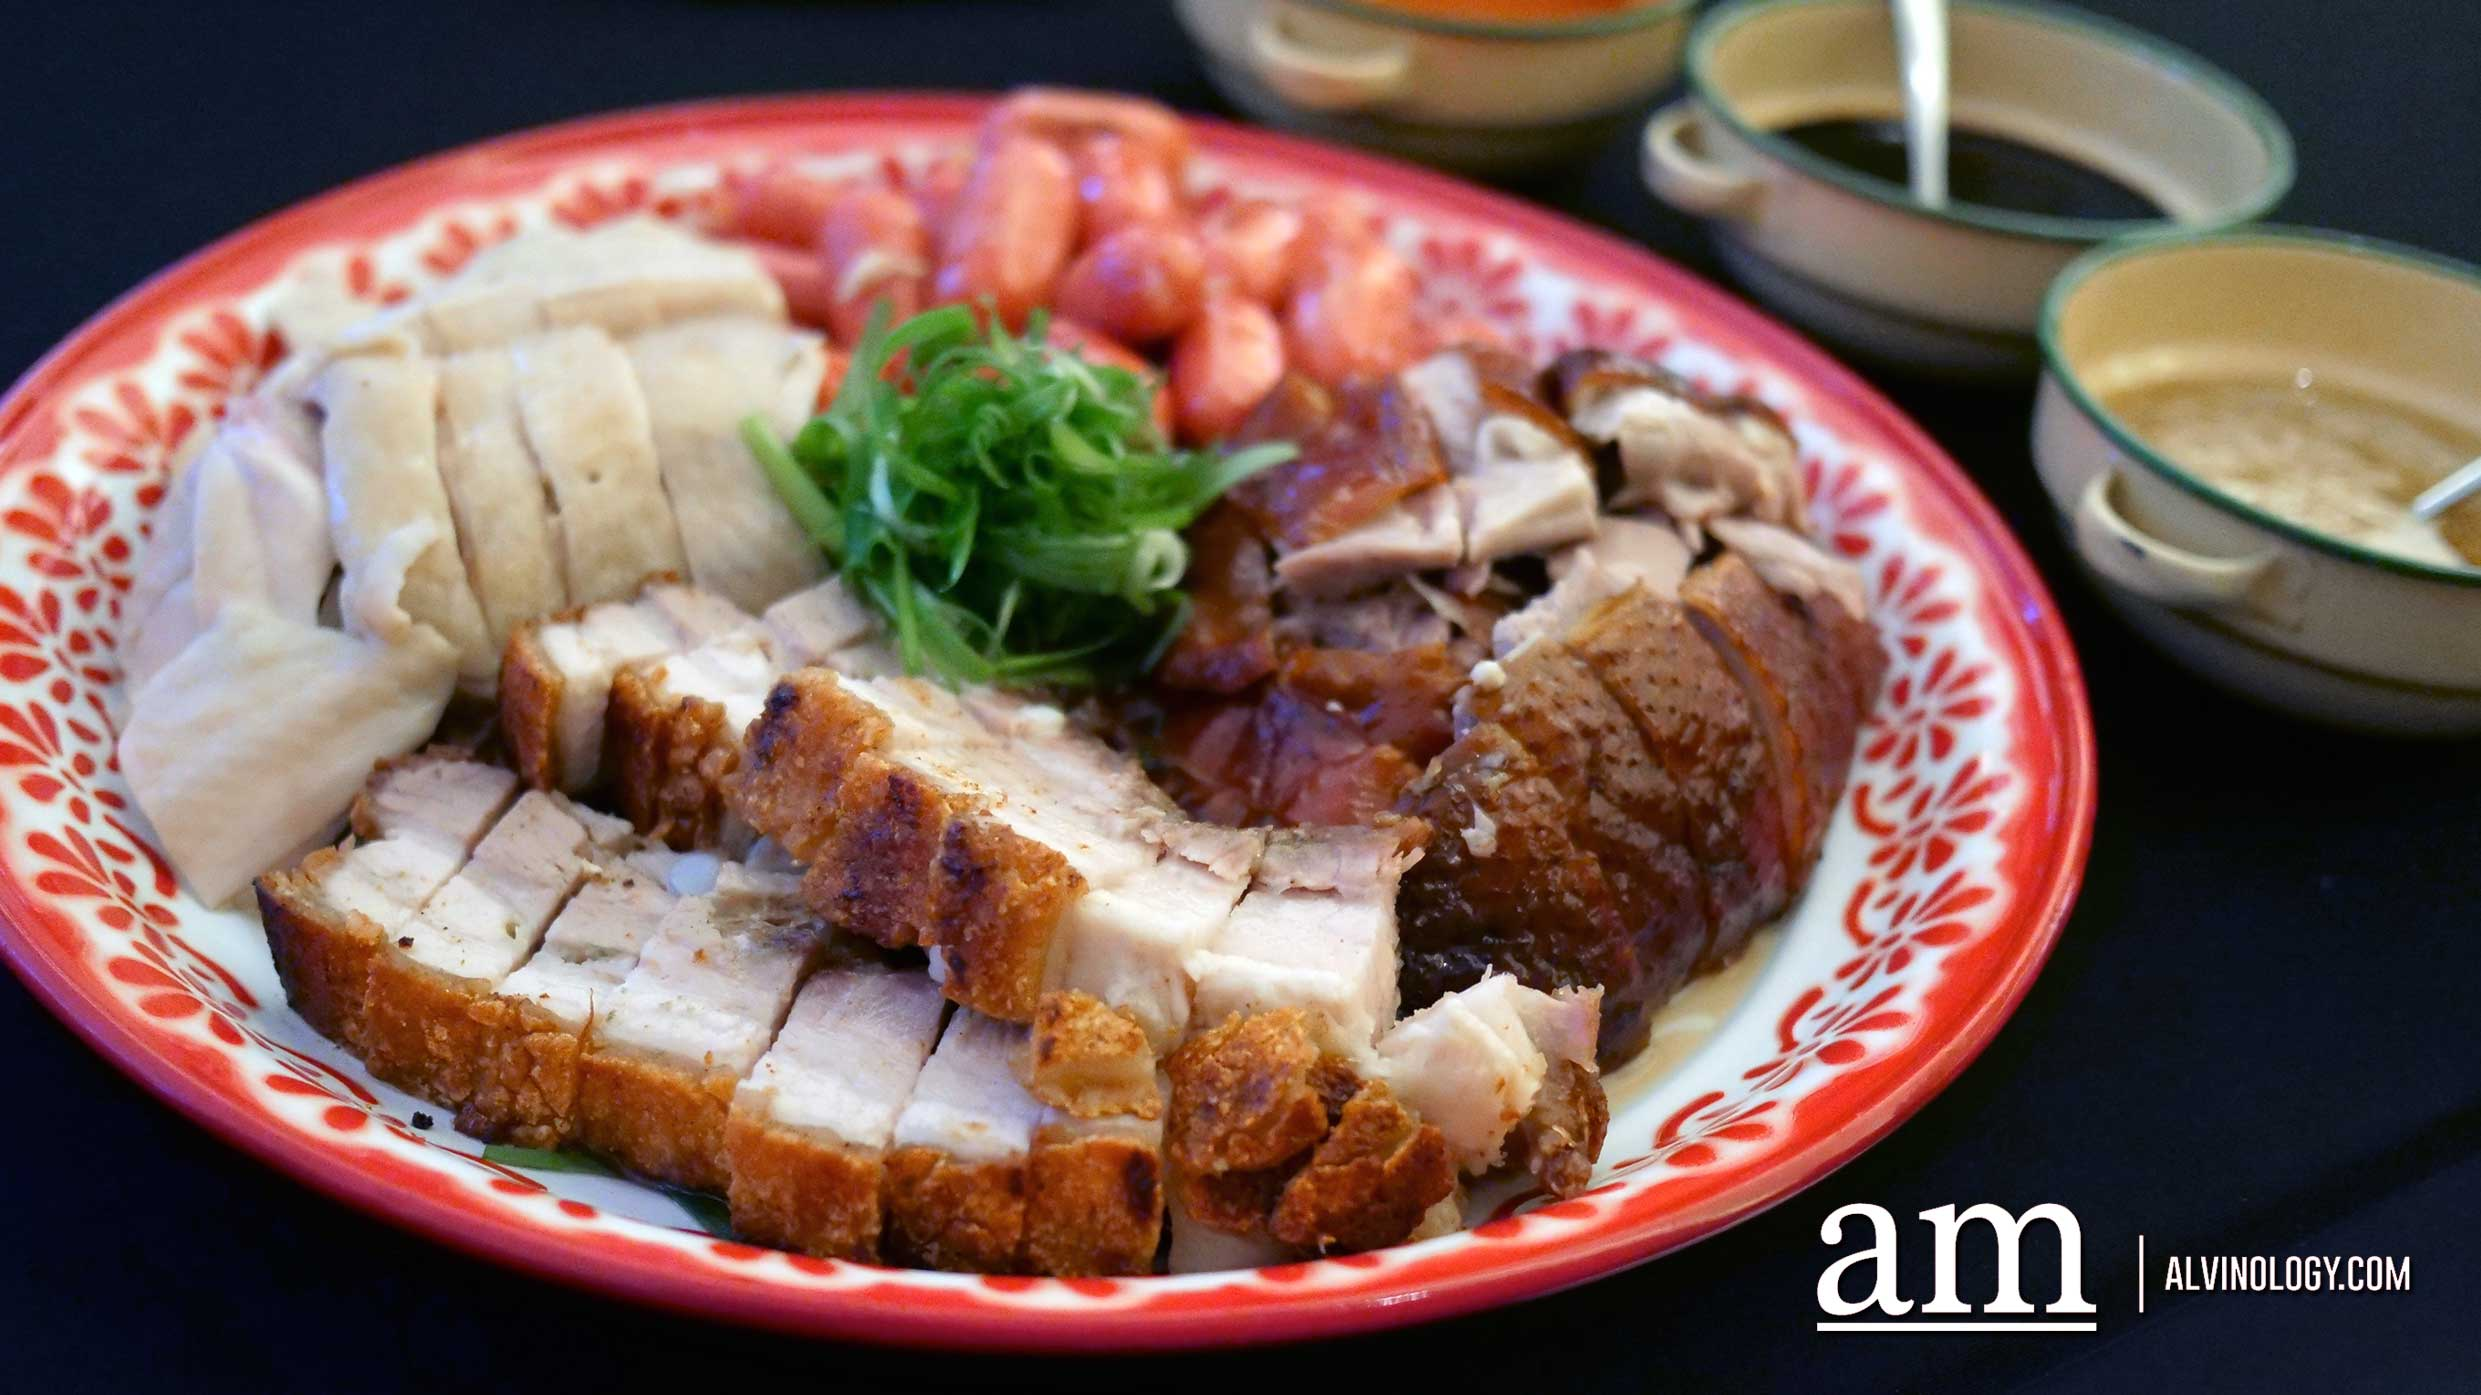 Hainanese Chicken and Cantonese Roast Meats